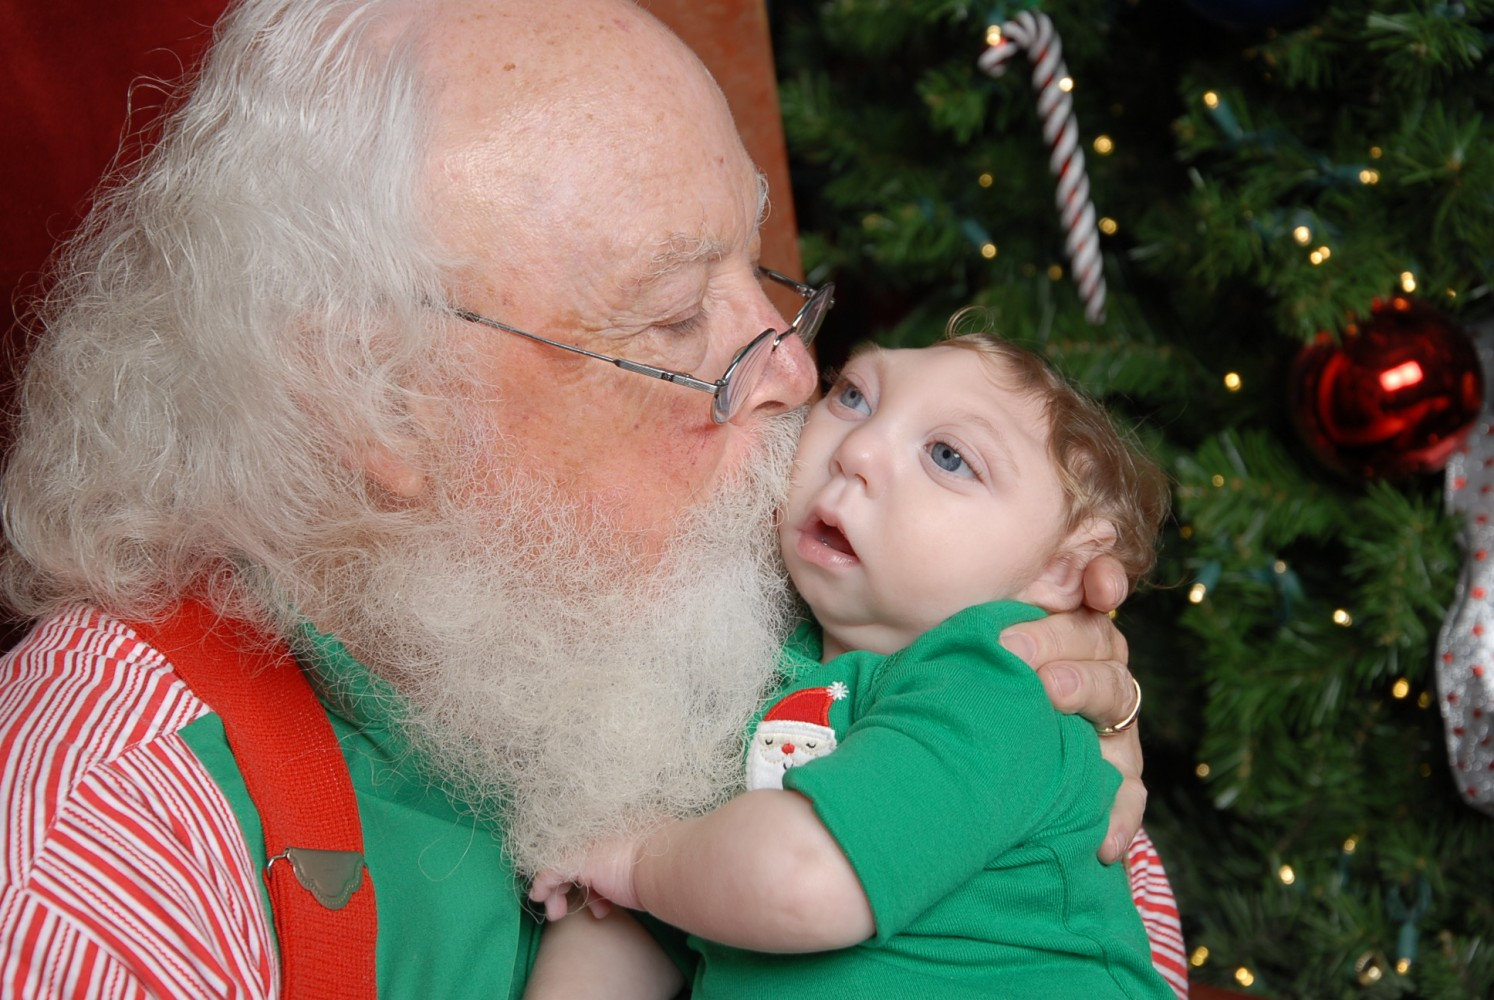 Jaxon strong baby born with partial brain meets santa for first